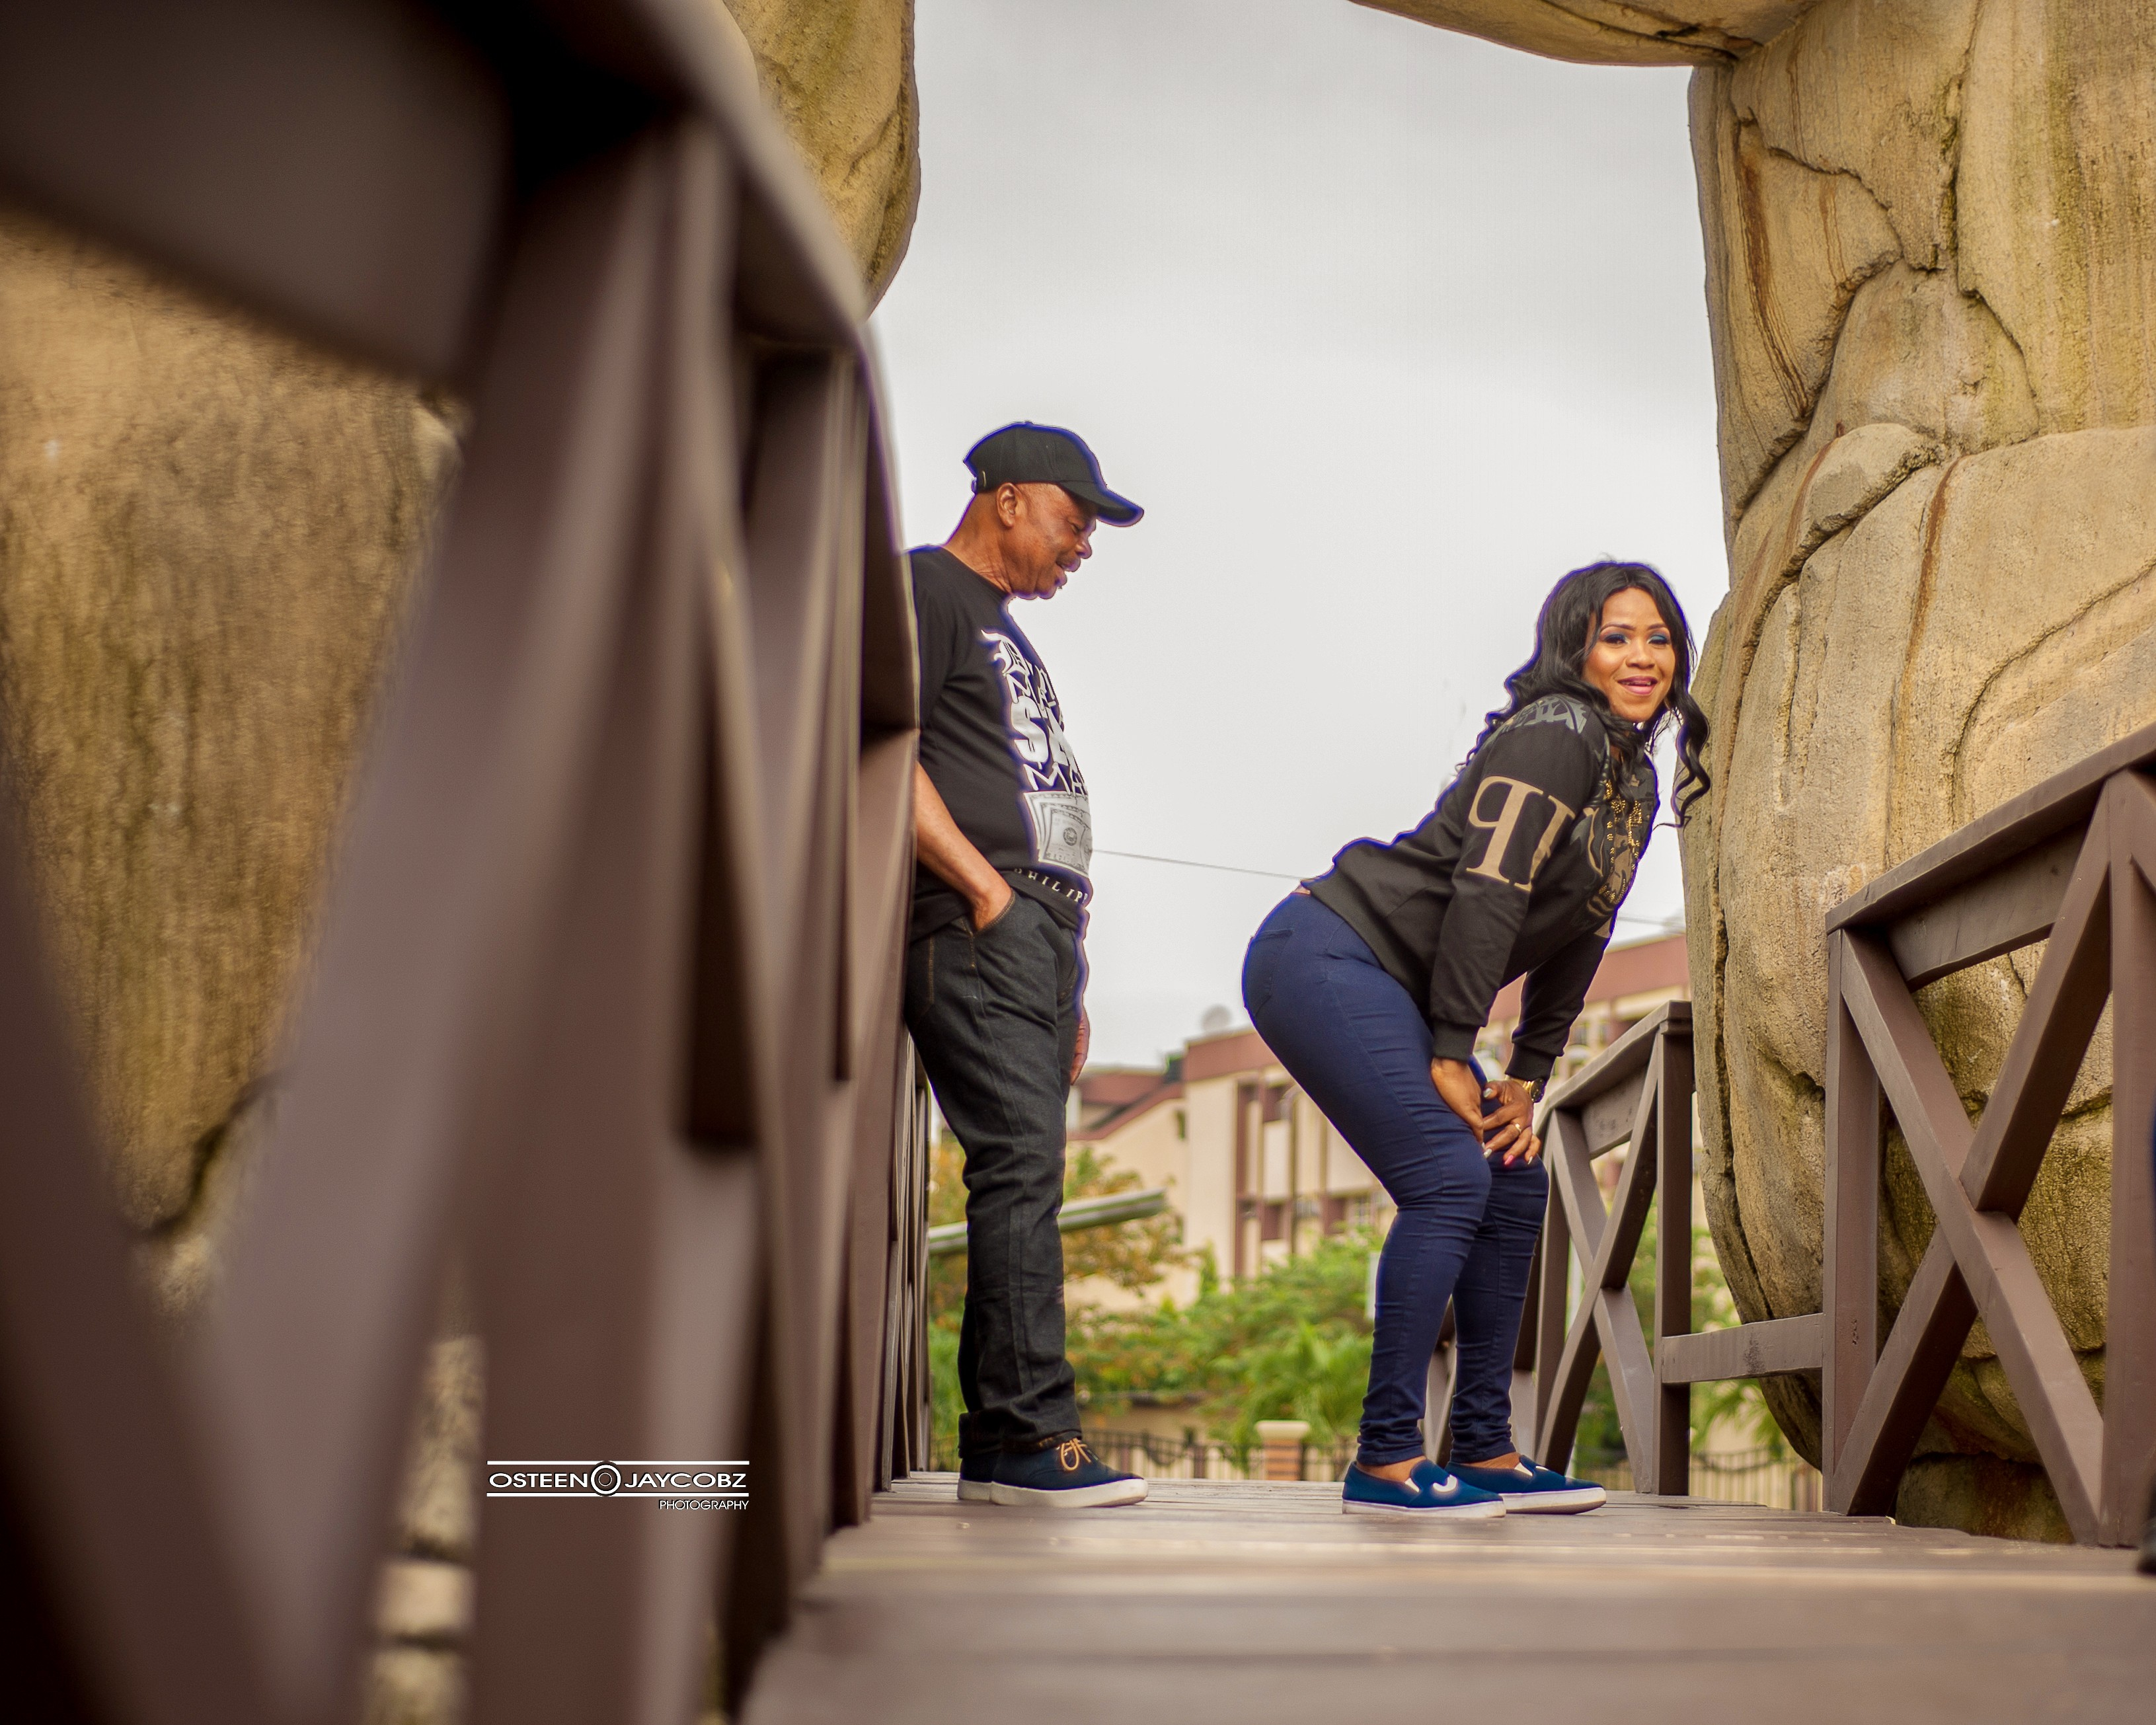 Elderly man stares at his partner's backside in their pre-wedding photos